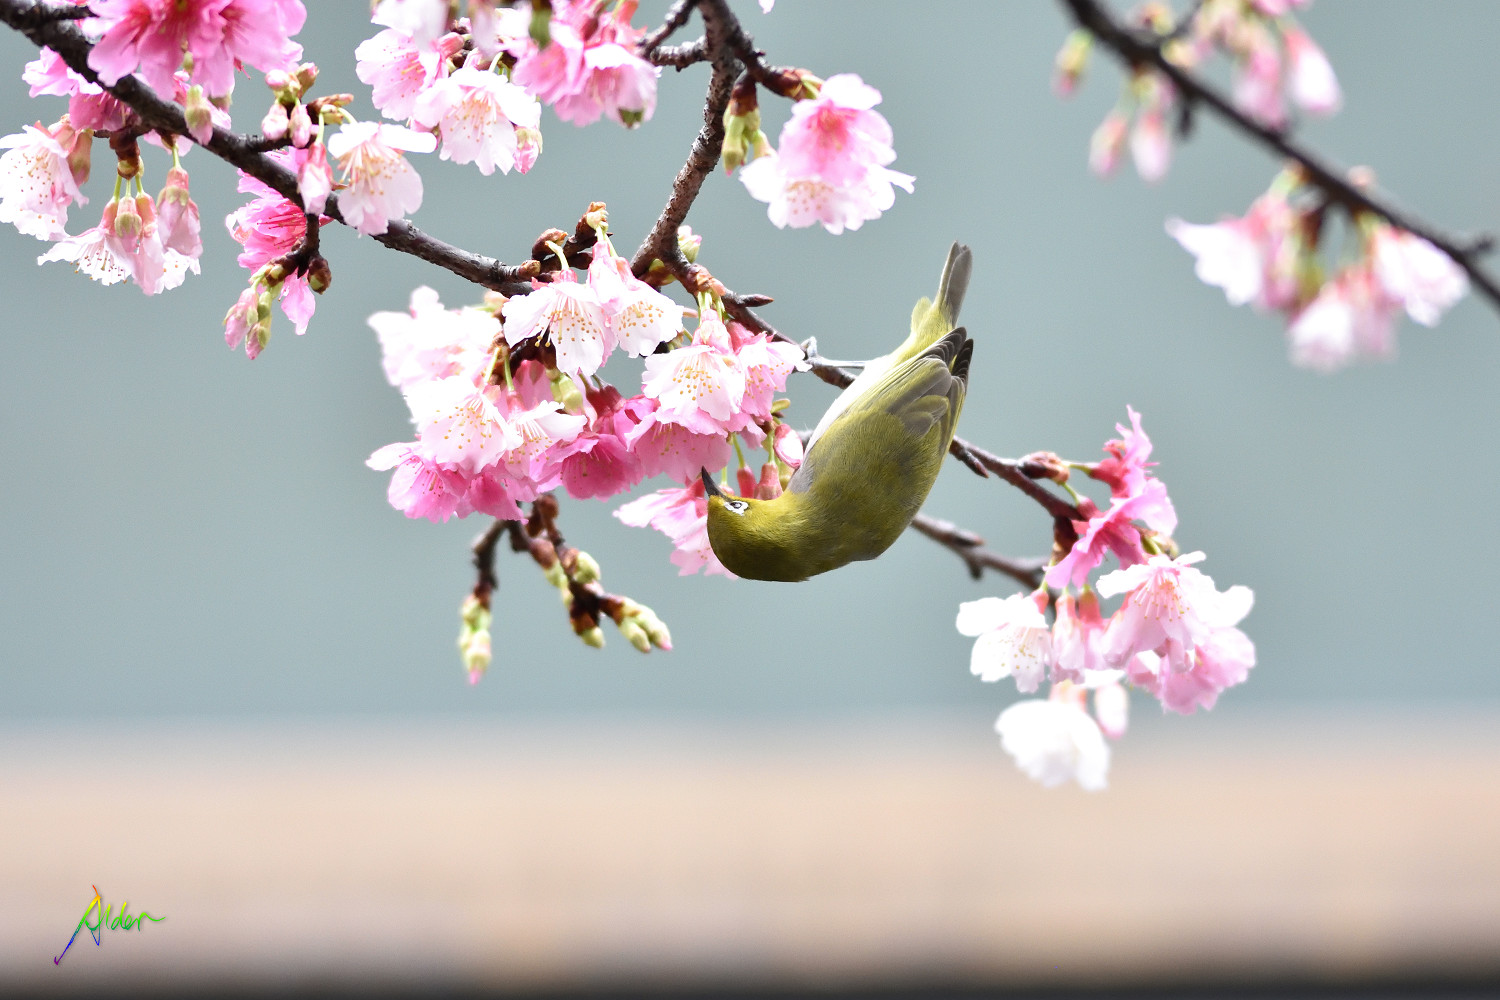 Sakura_White-eye_7949